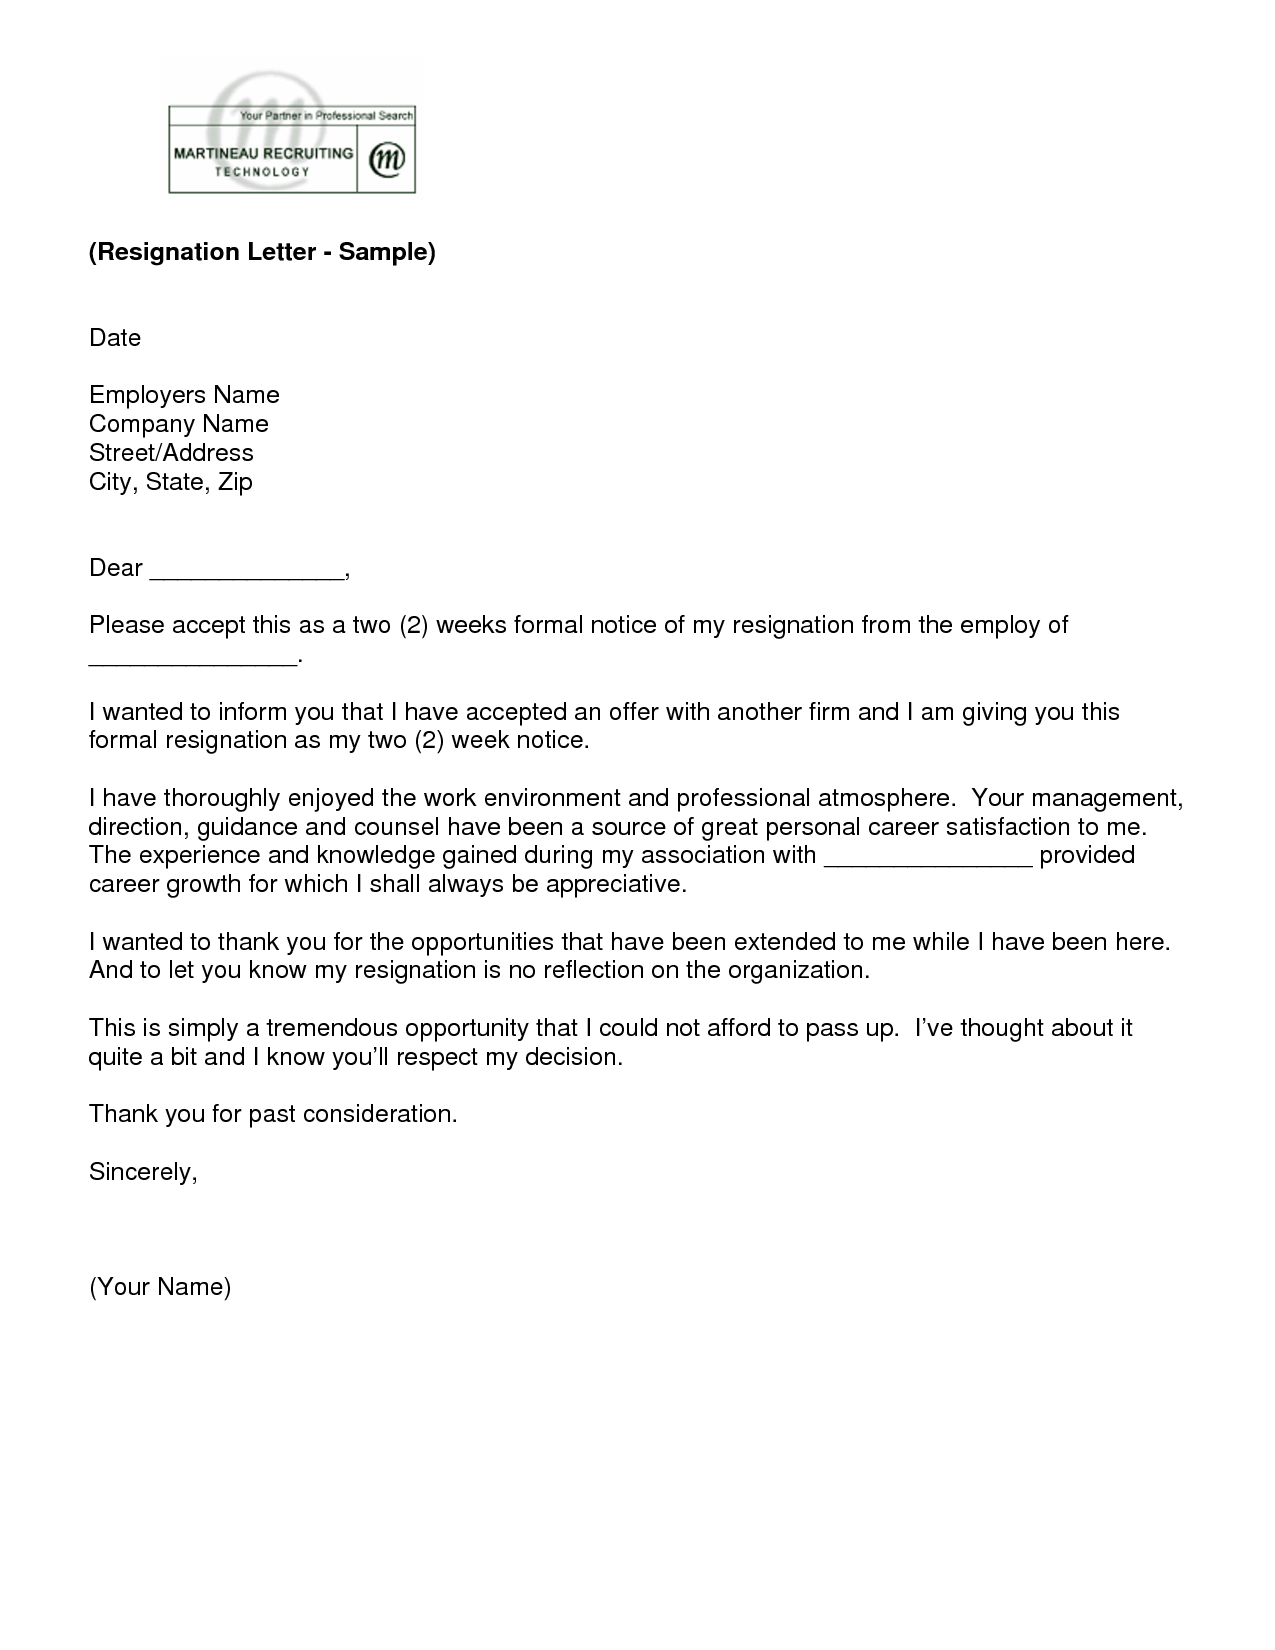 letter of resignation 2 weeks notice template | Ew. Adulthood